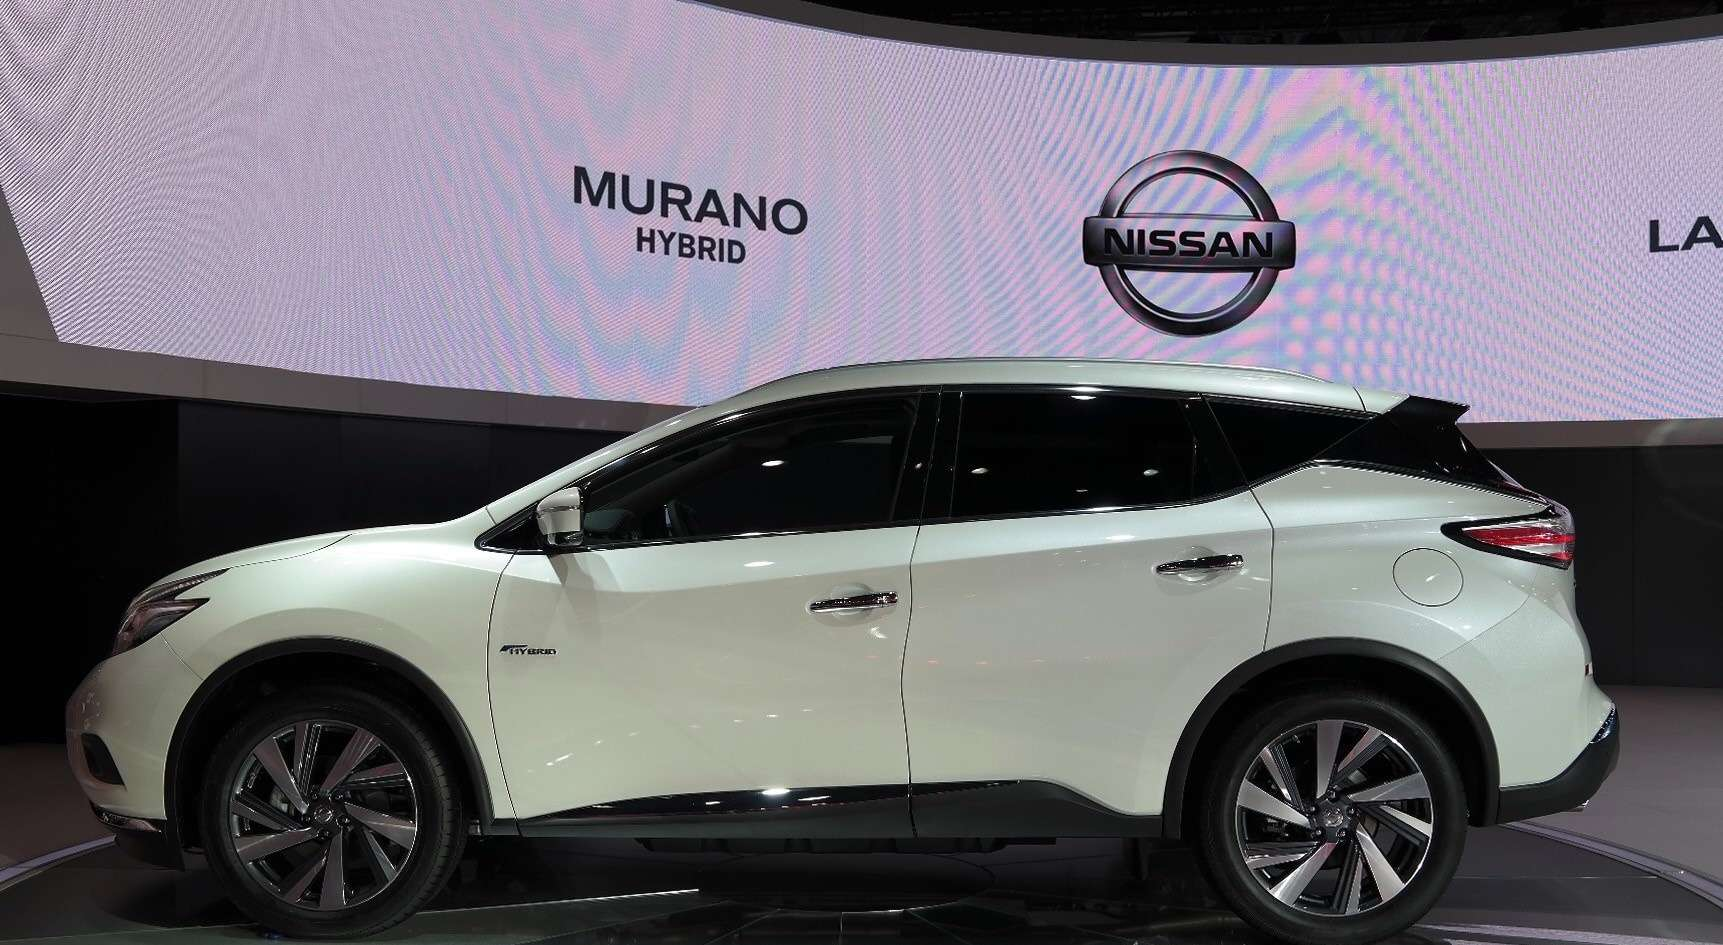 world-premiere-for-2016-nissan-murano-hybrid-at-auto-shanghai-2015-live-photos_18